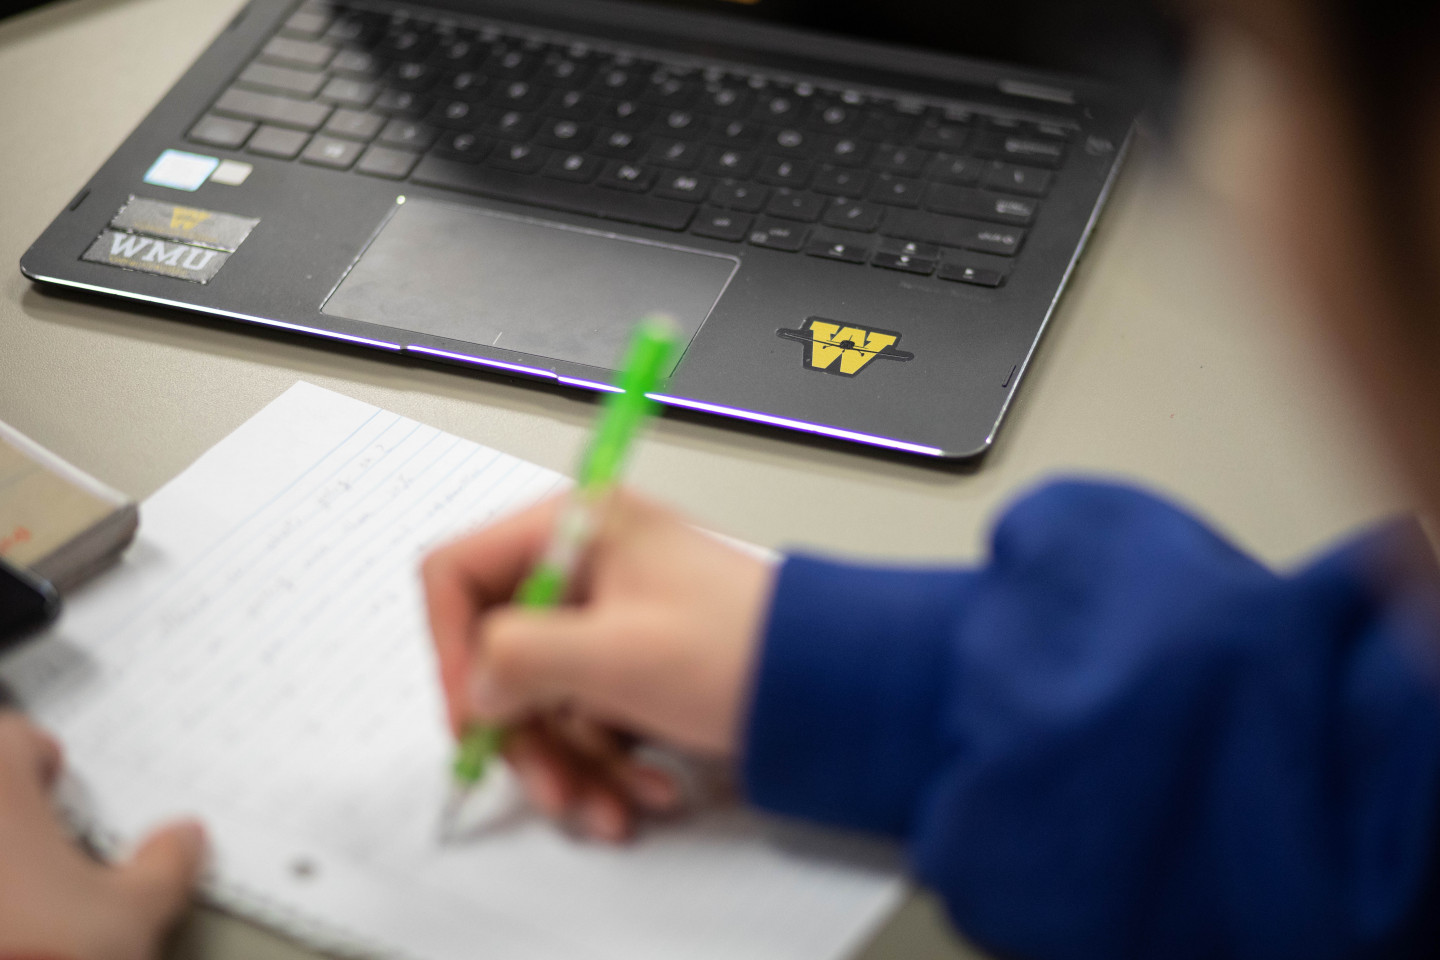 Photo of a laptop on a desk and a student's hand writing.